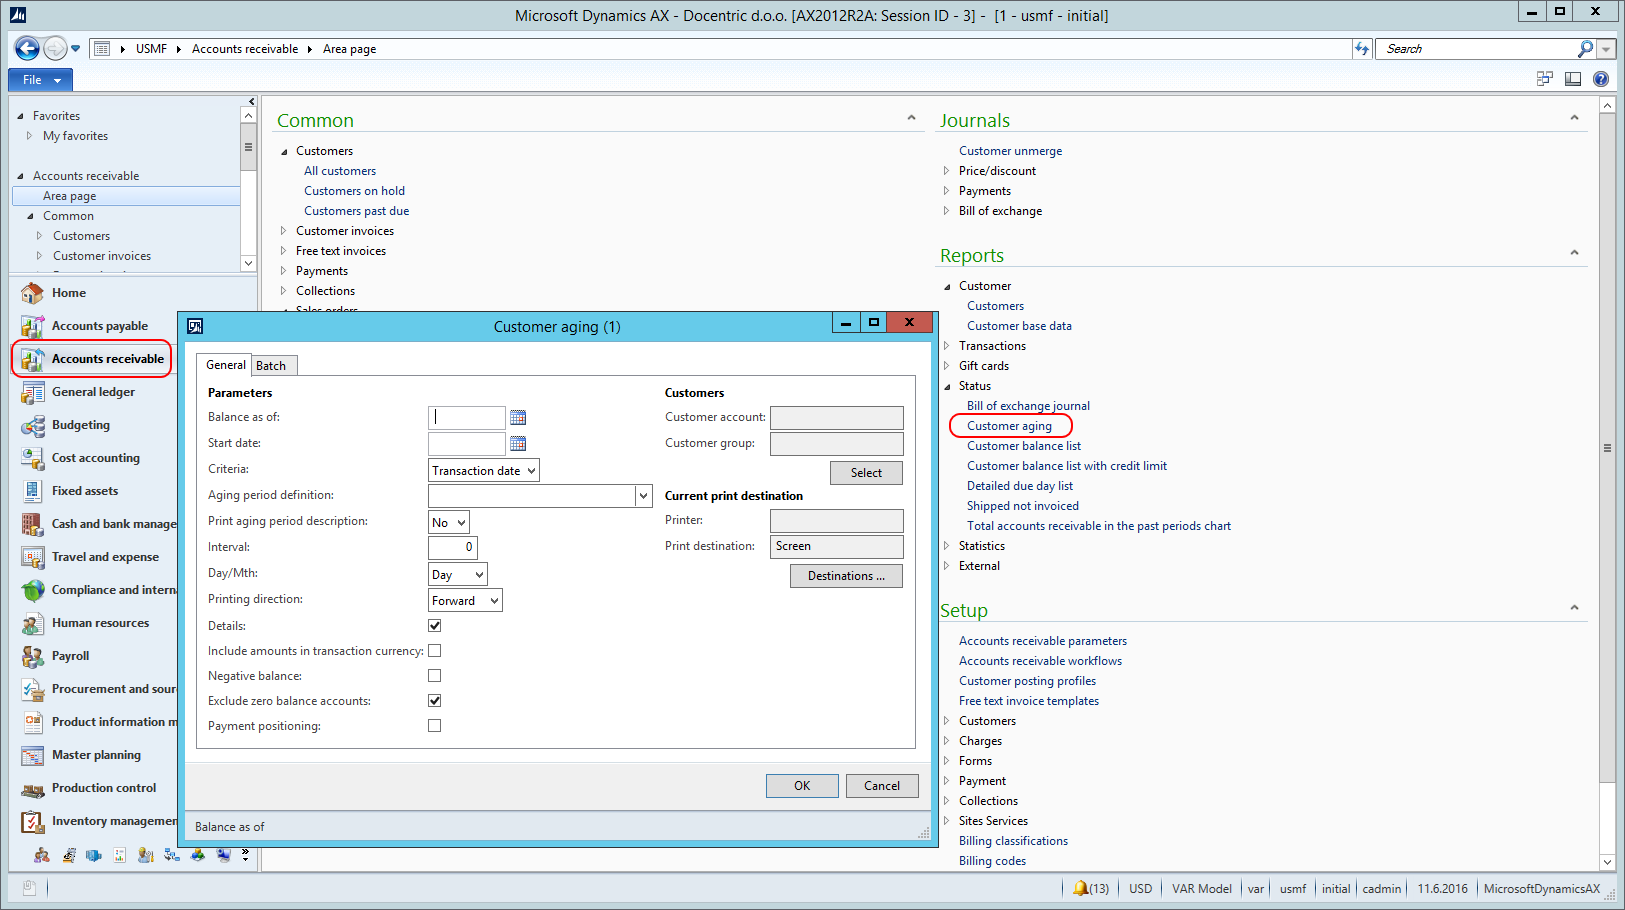 Why I see phantom records in my SSRS report - MS Dynamics AX